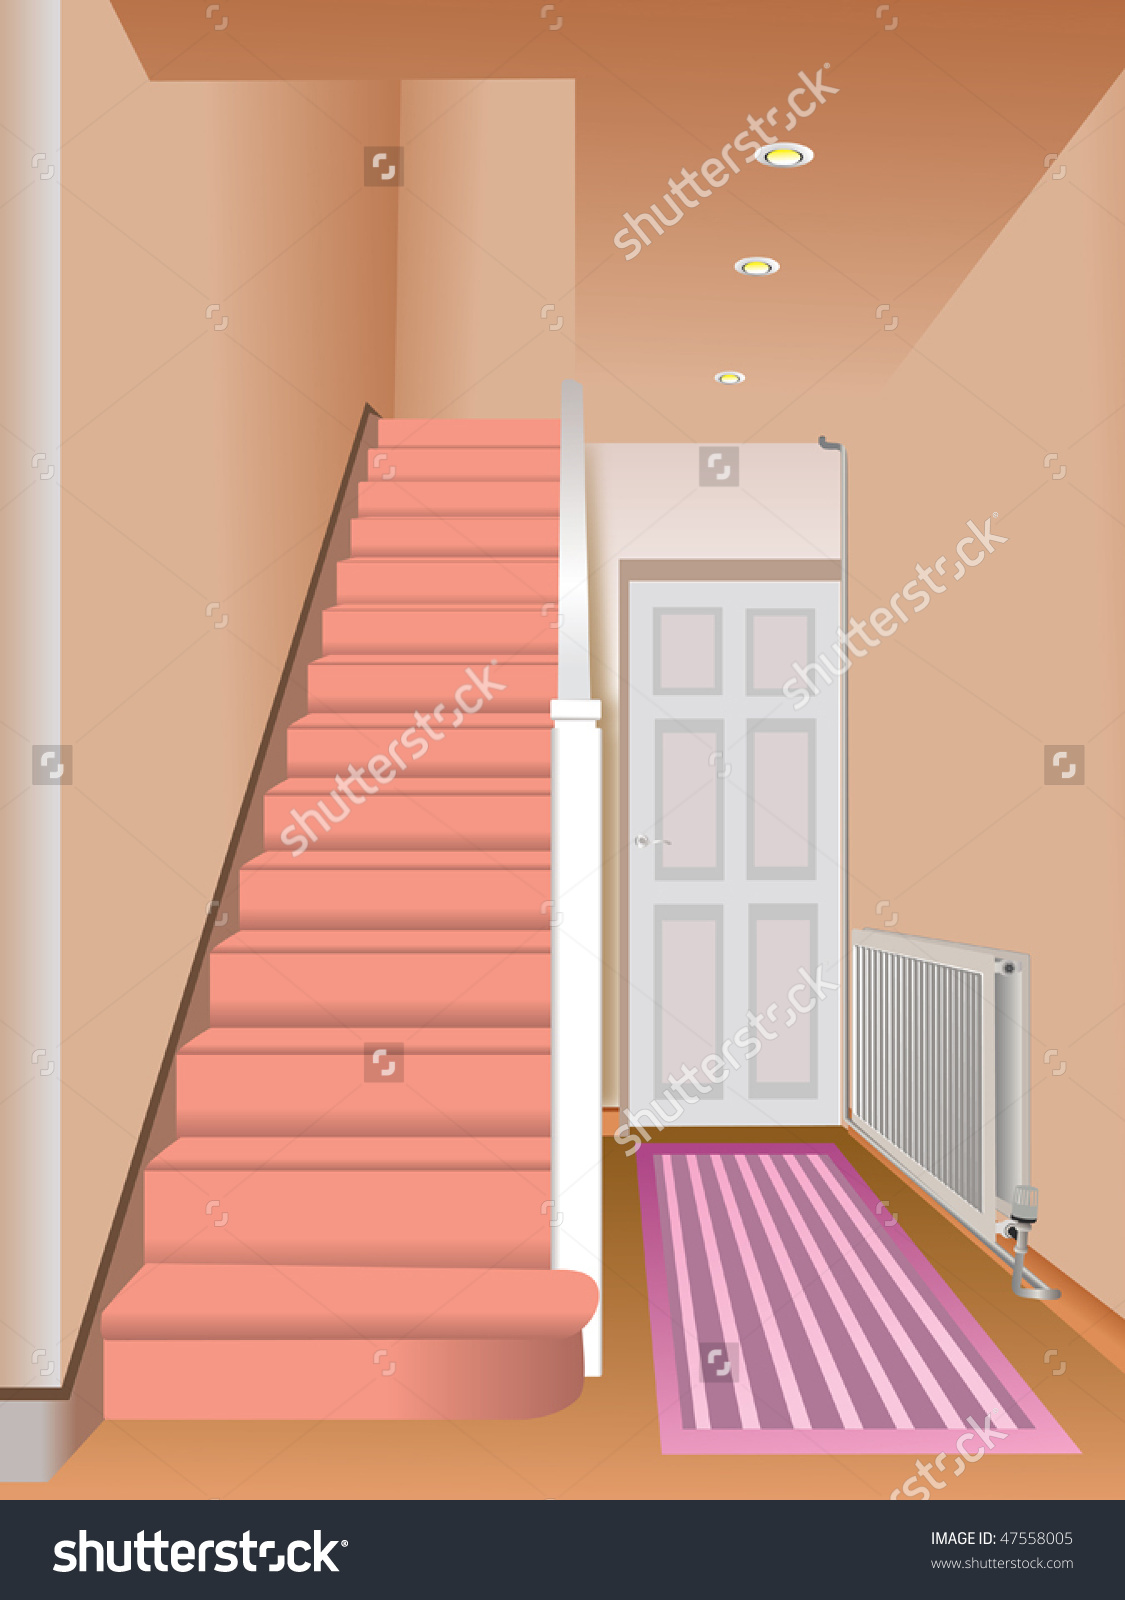 Entrance hall clipart clipground for Drawing hall interior